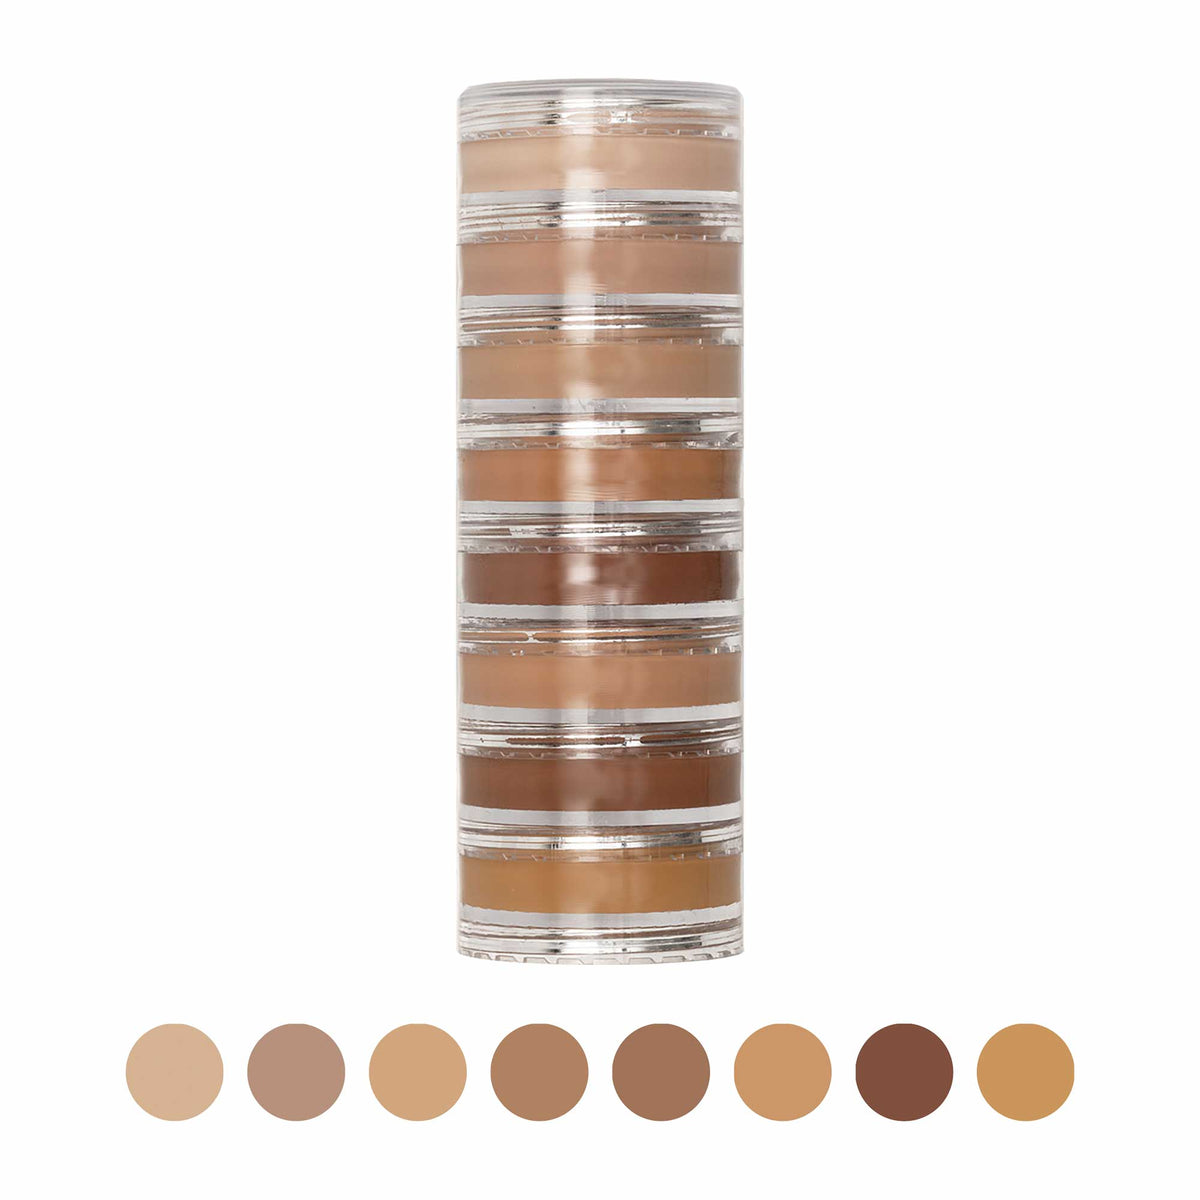 Kryolan Ultra Foundation Stackers